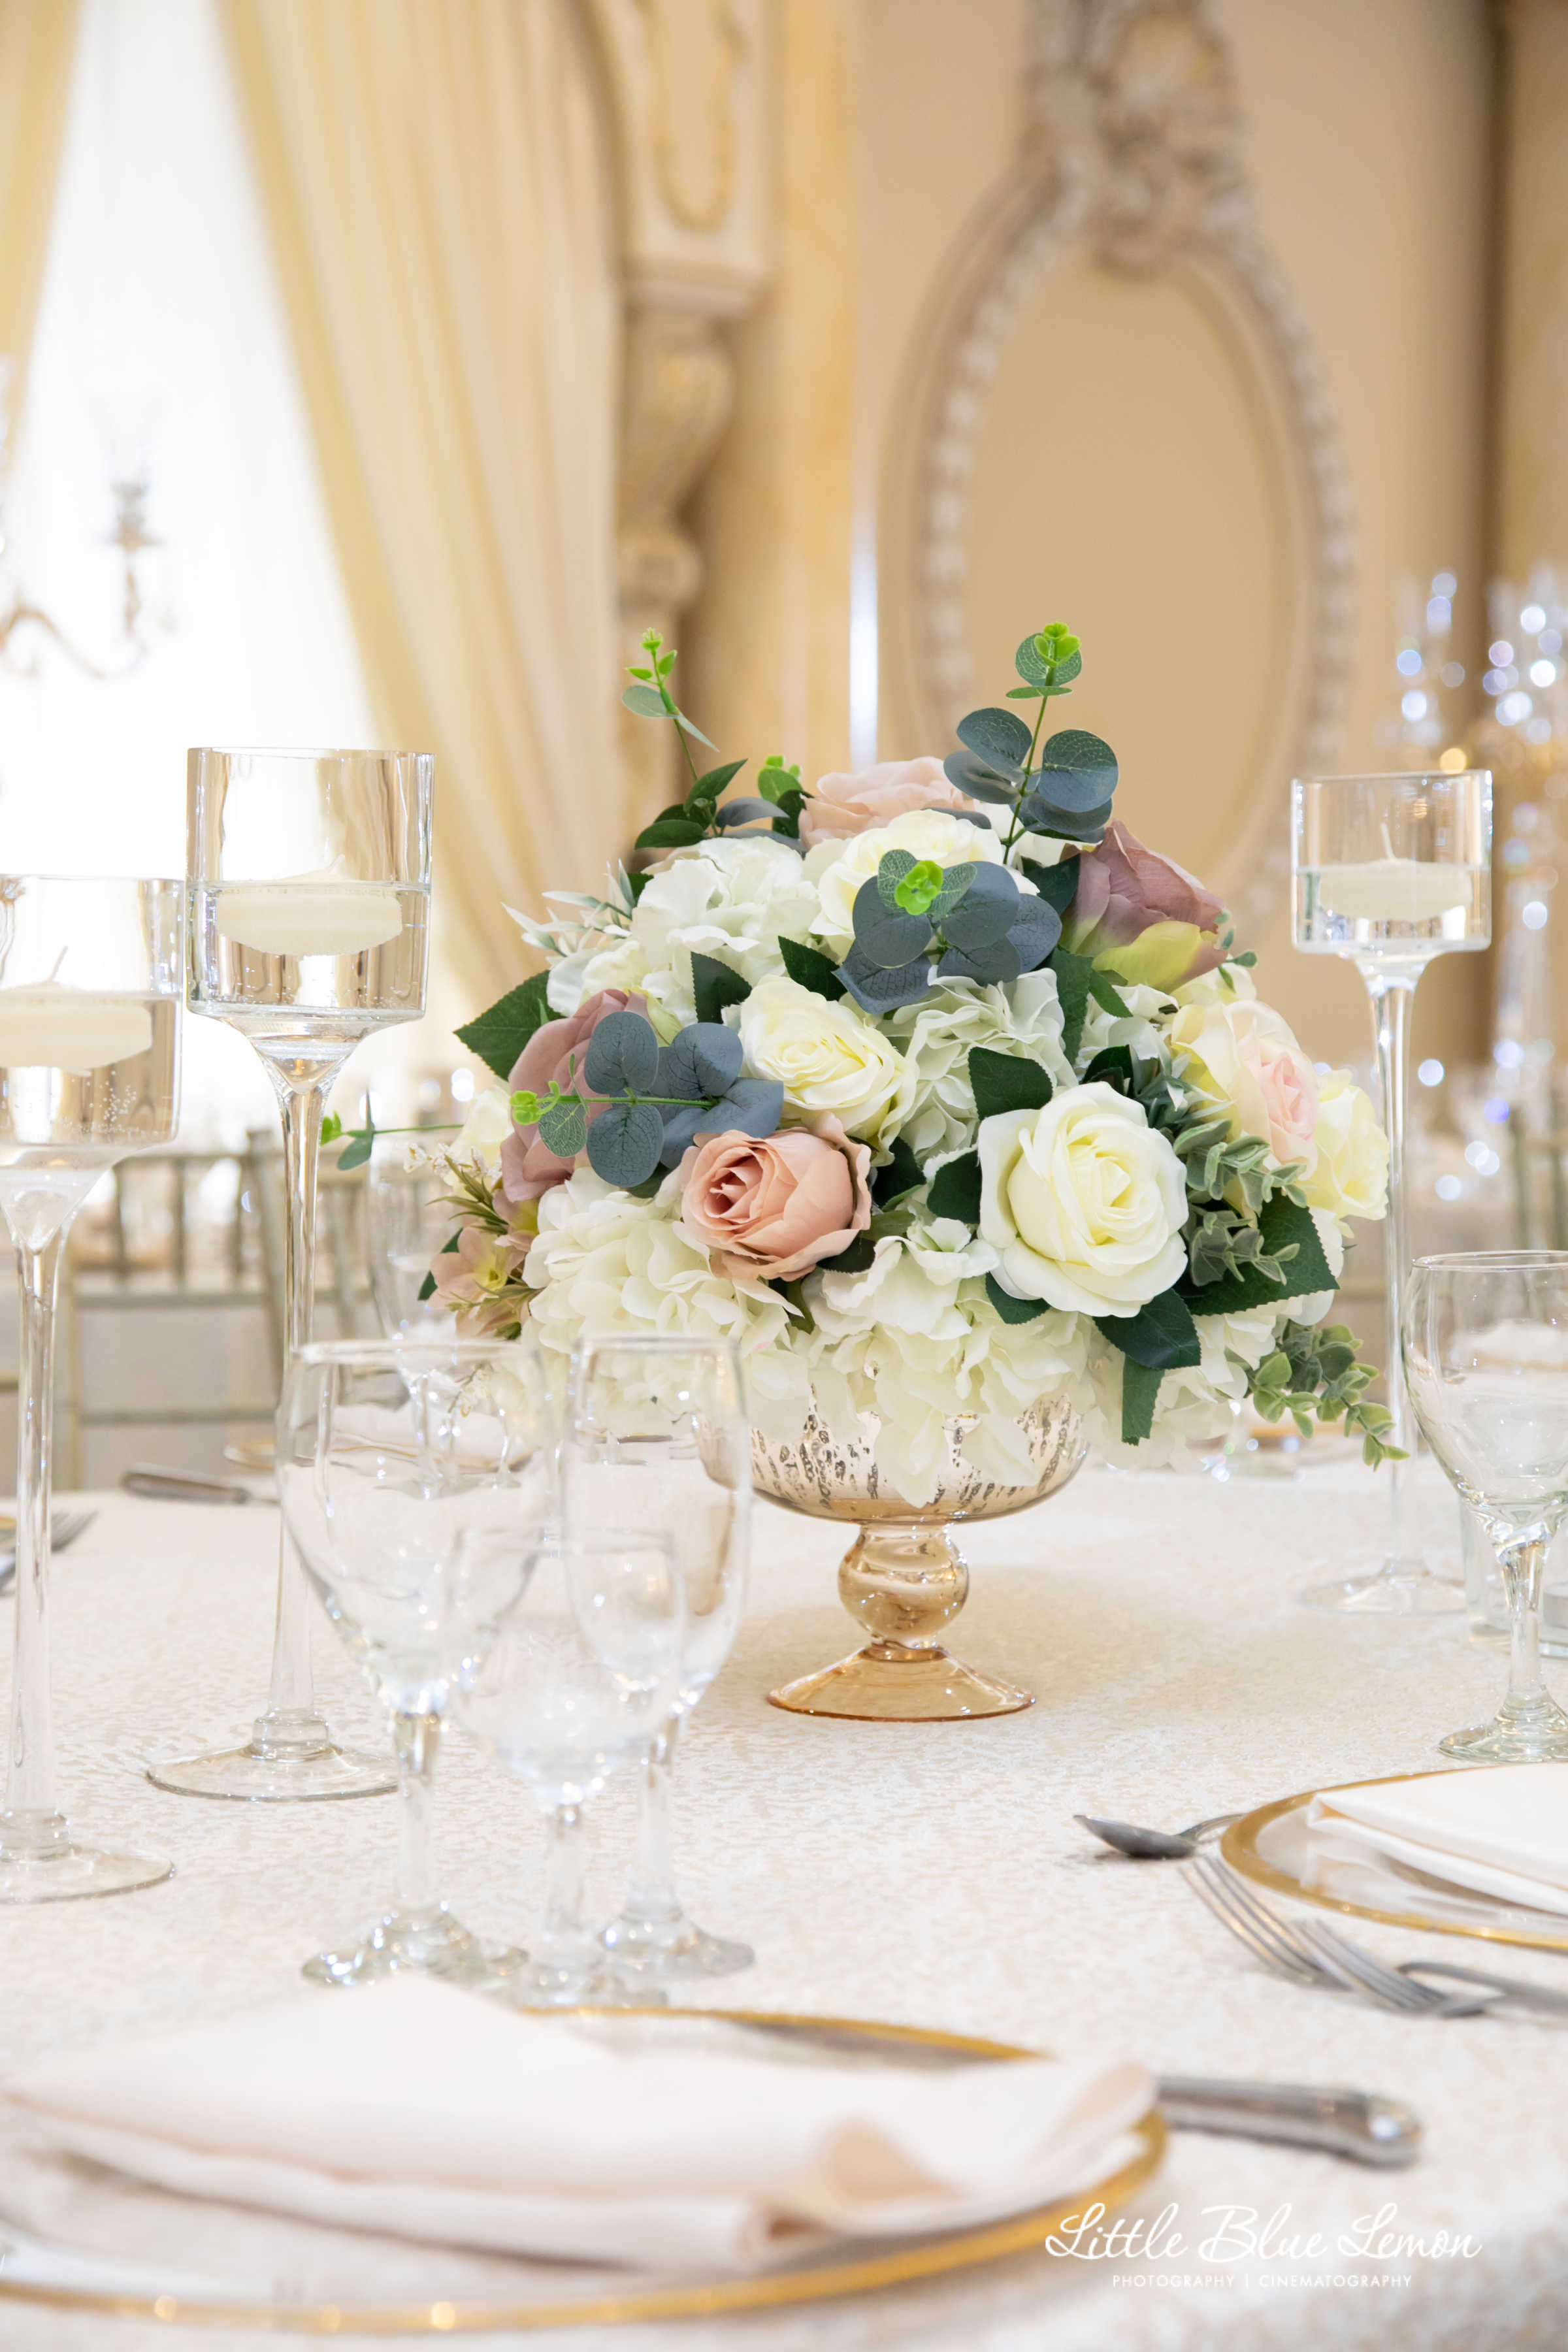 A flower arrangement set on a table with silverware and a white linen table sheet.